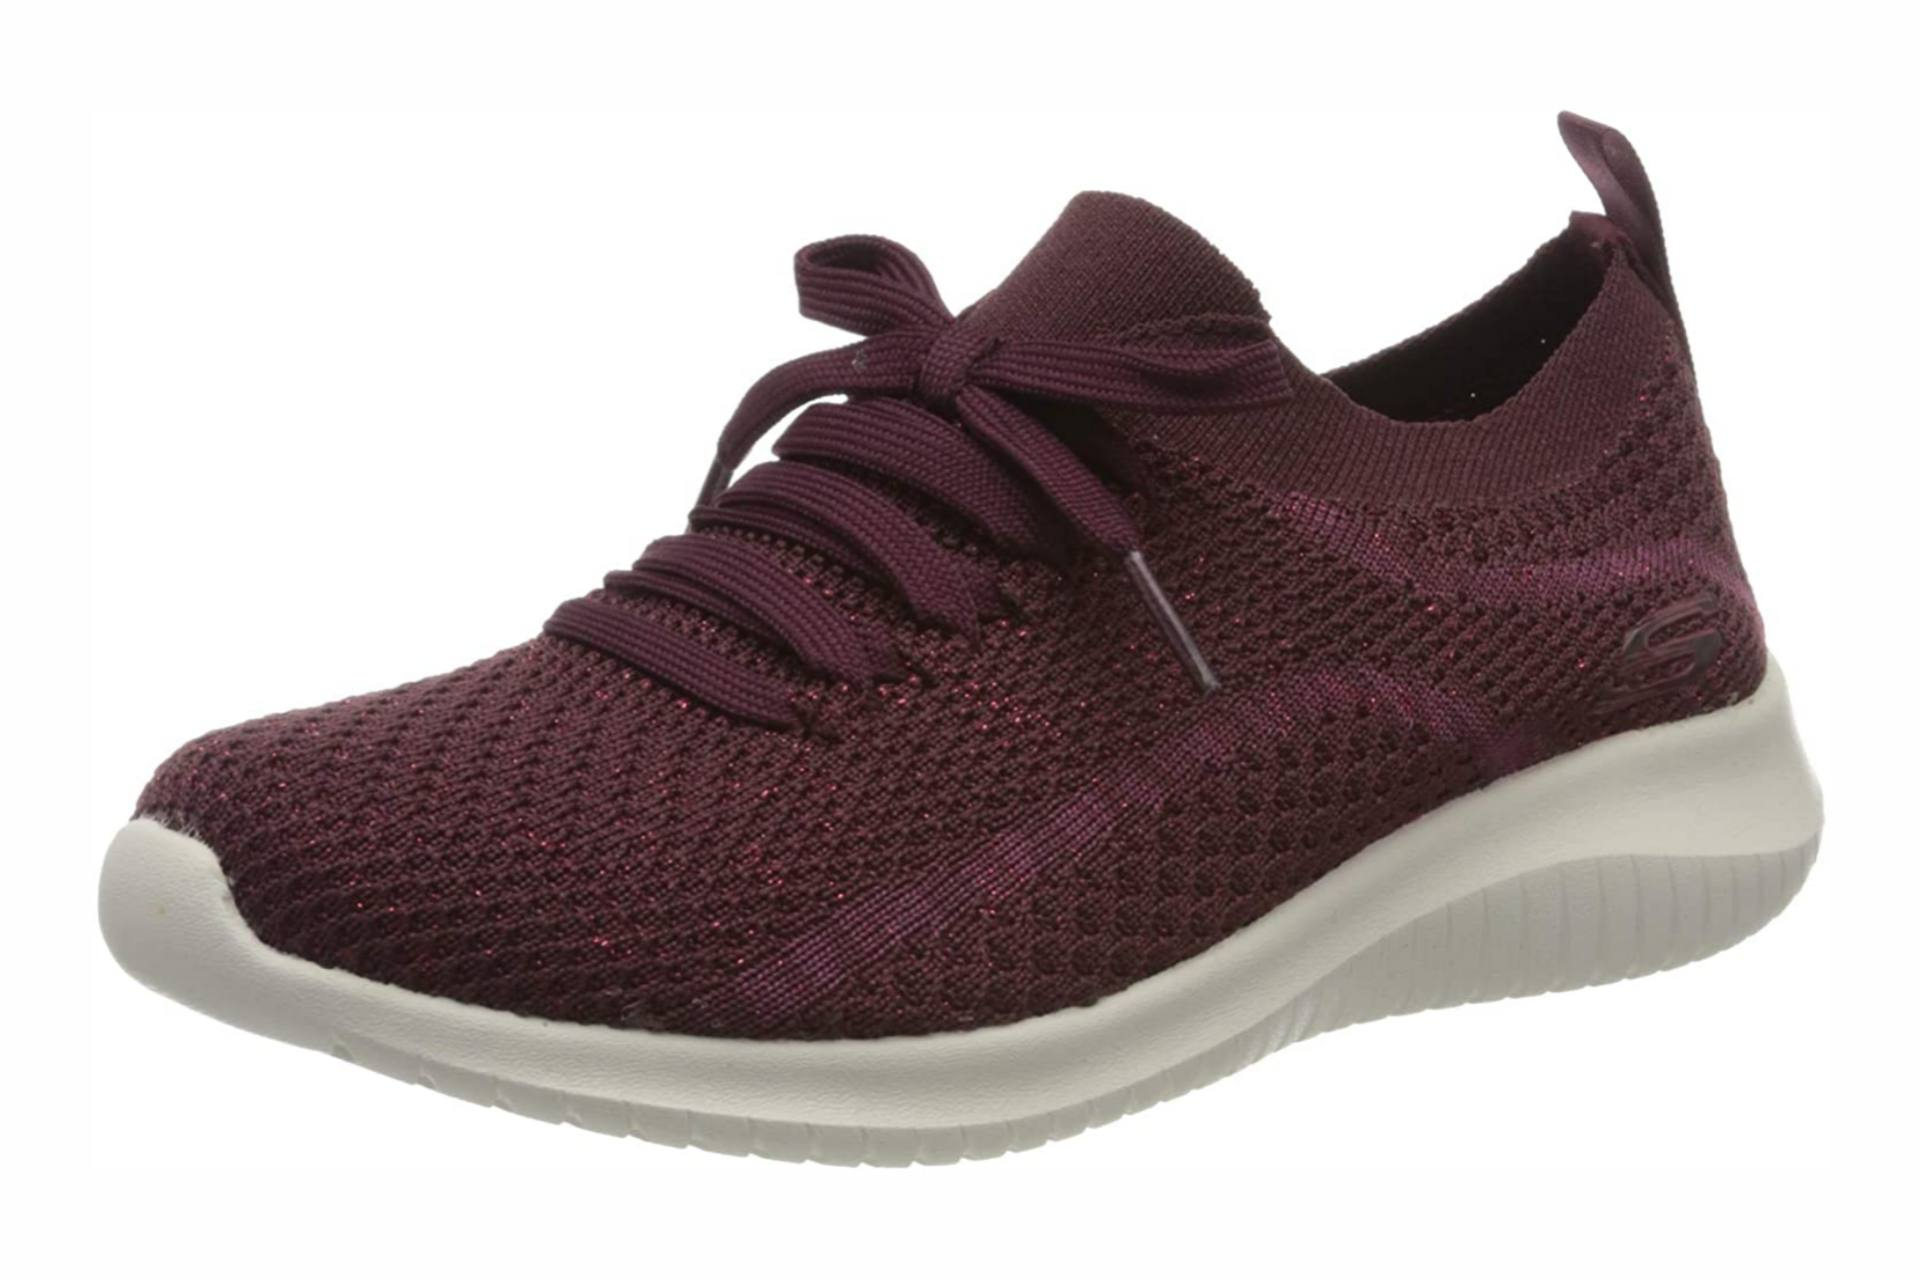 Skechers recommended for arch support